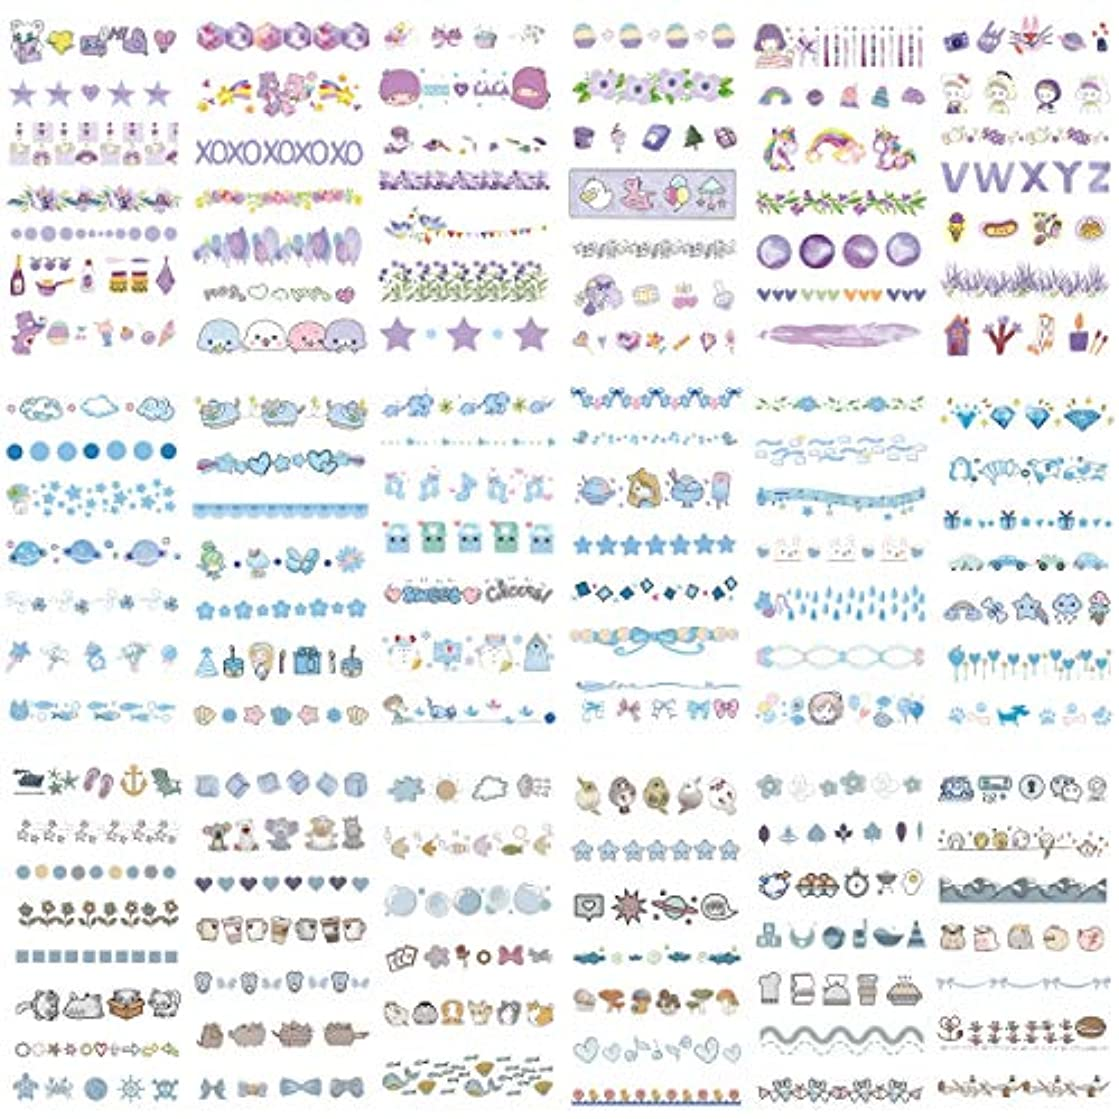 Cute Washi Sticker Set (18 Sheets) Cloud Planet Fish Elephant Musical Note Diamond Car Floral Bow Whale Bird Bunting Stationery Stickers DIY Handmade Label for Scrapbook Journal Arts Craft